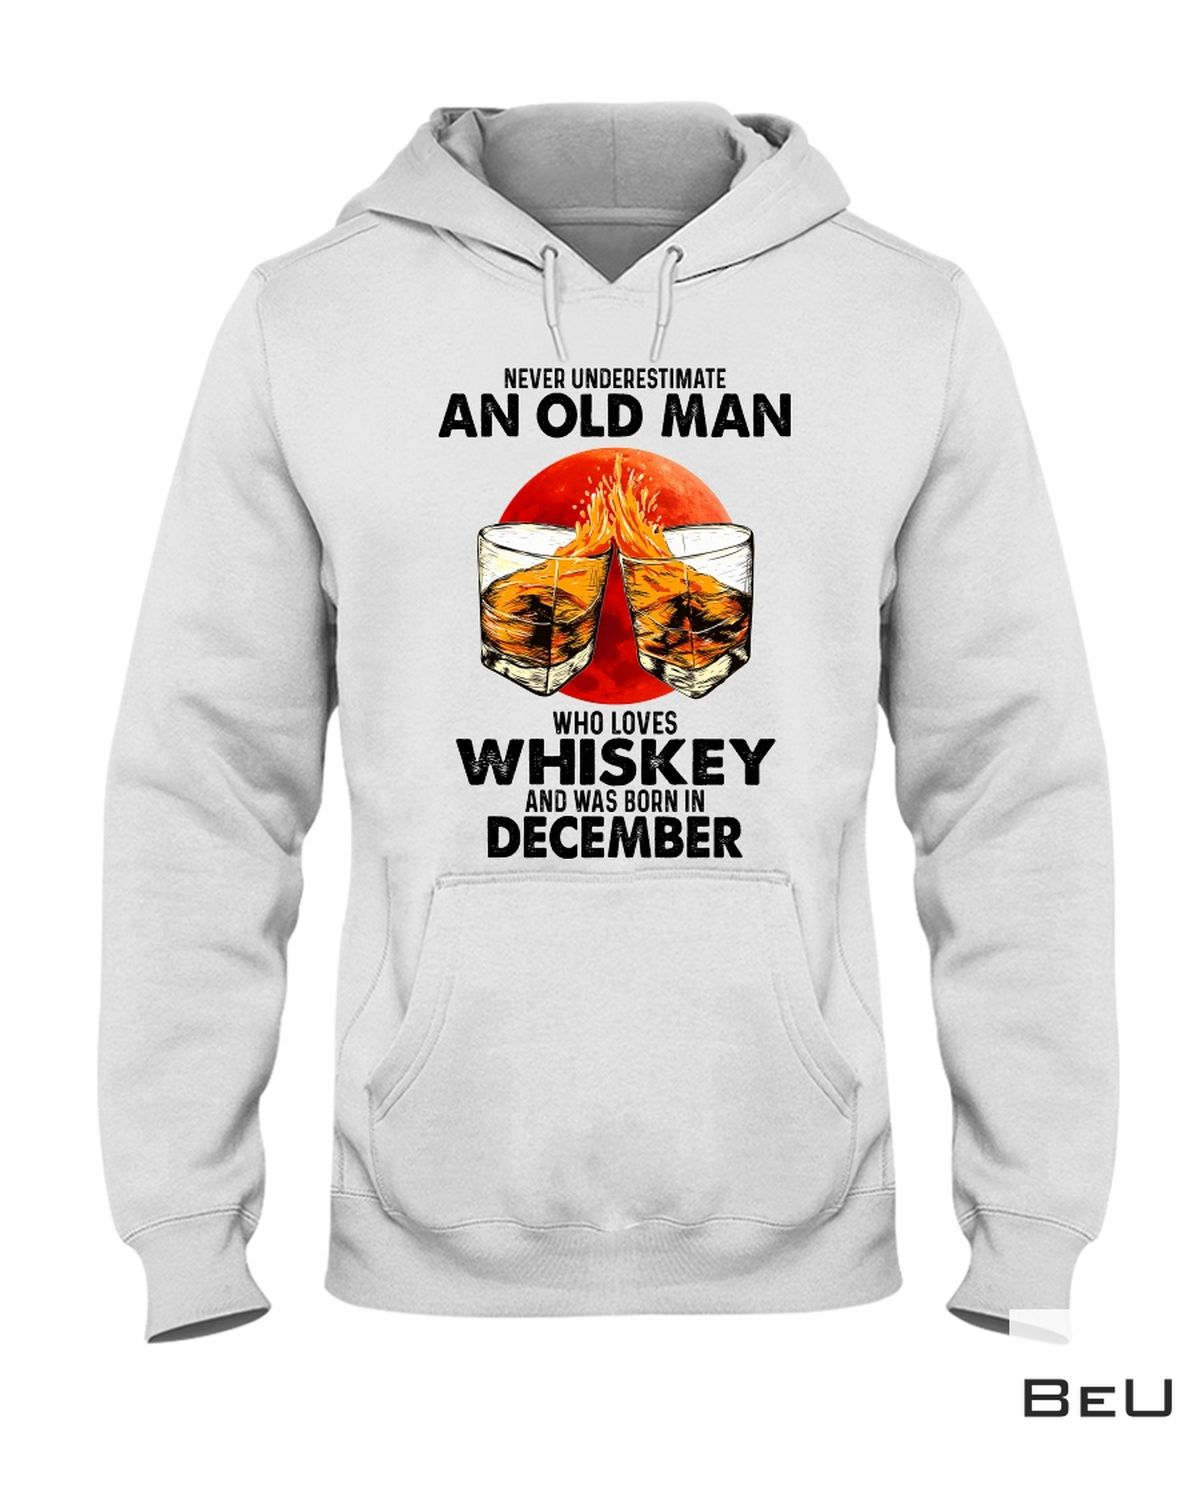 Absolutely Love Never Underestimate An Old Man Who Love Whiskey And Born In December Shirt, hoodie, tank top